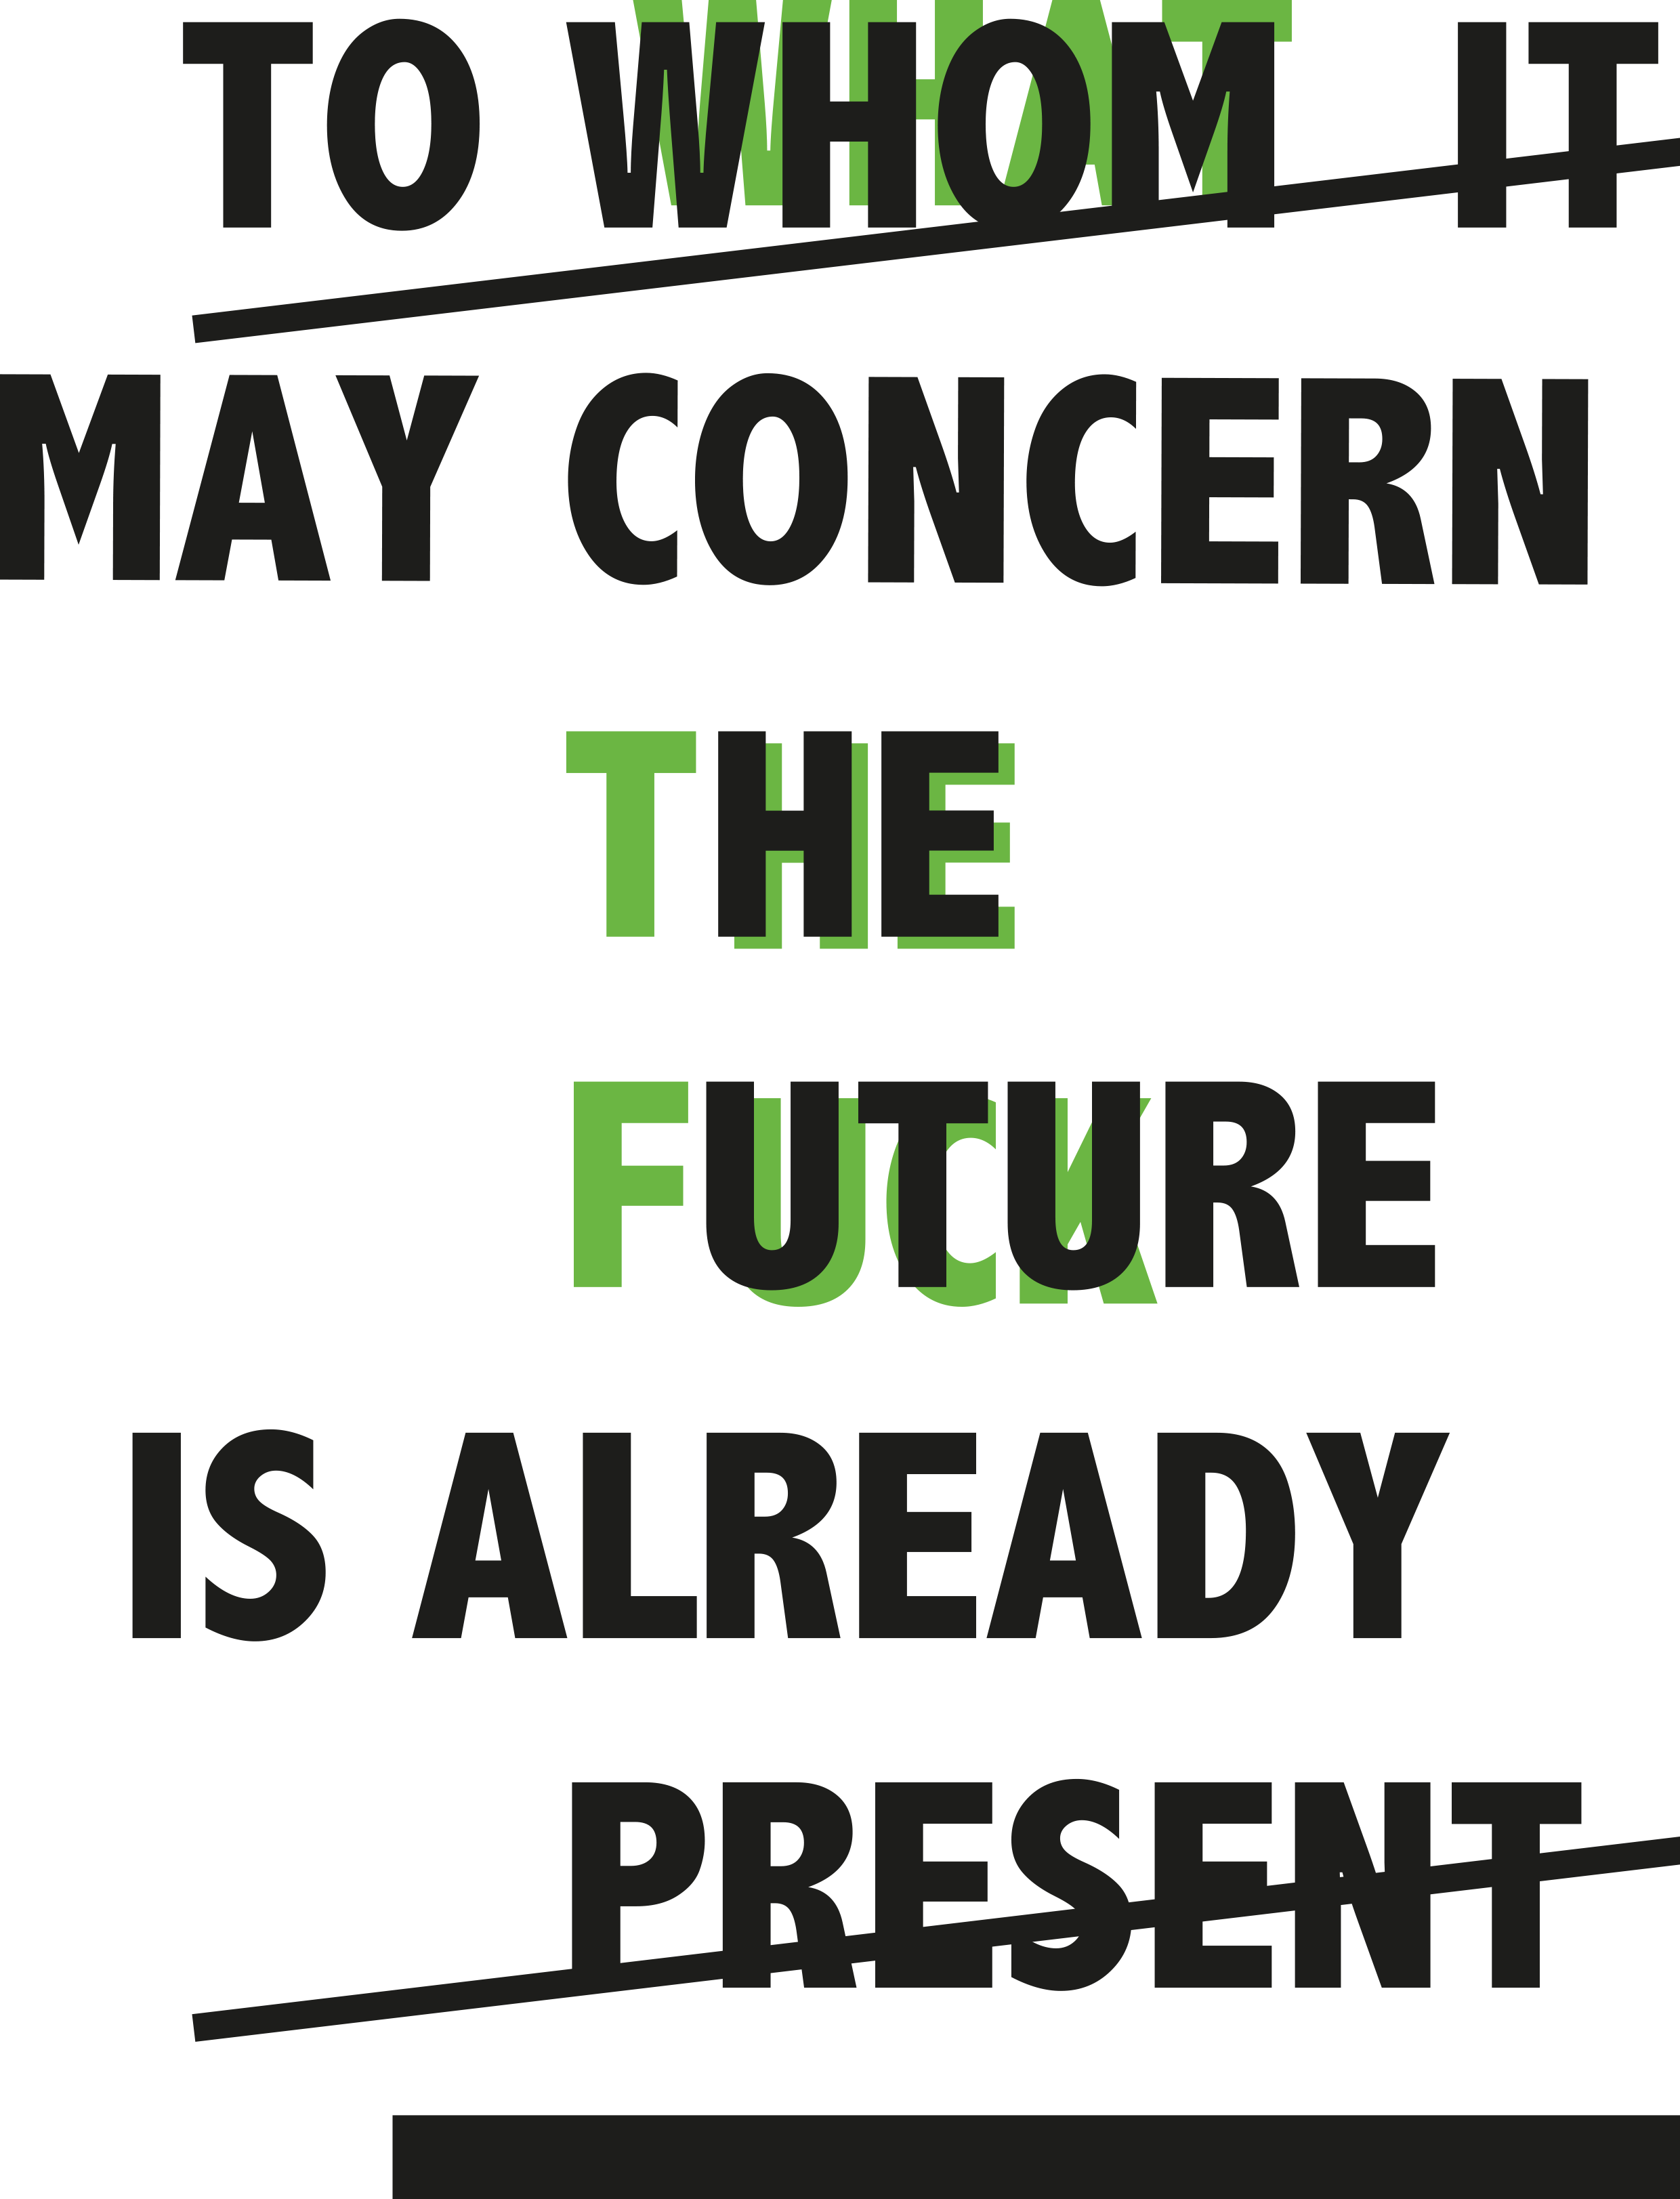 TO WHOM IT MAY CONCERN THE FUTURE IS ALREADY PRESENT